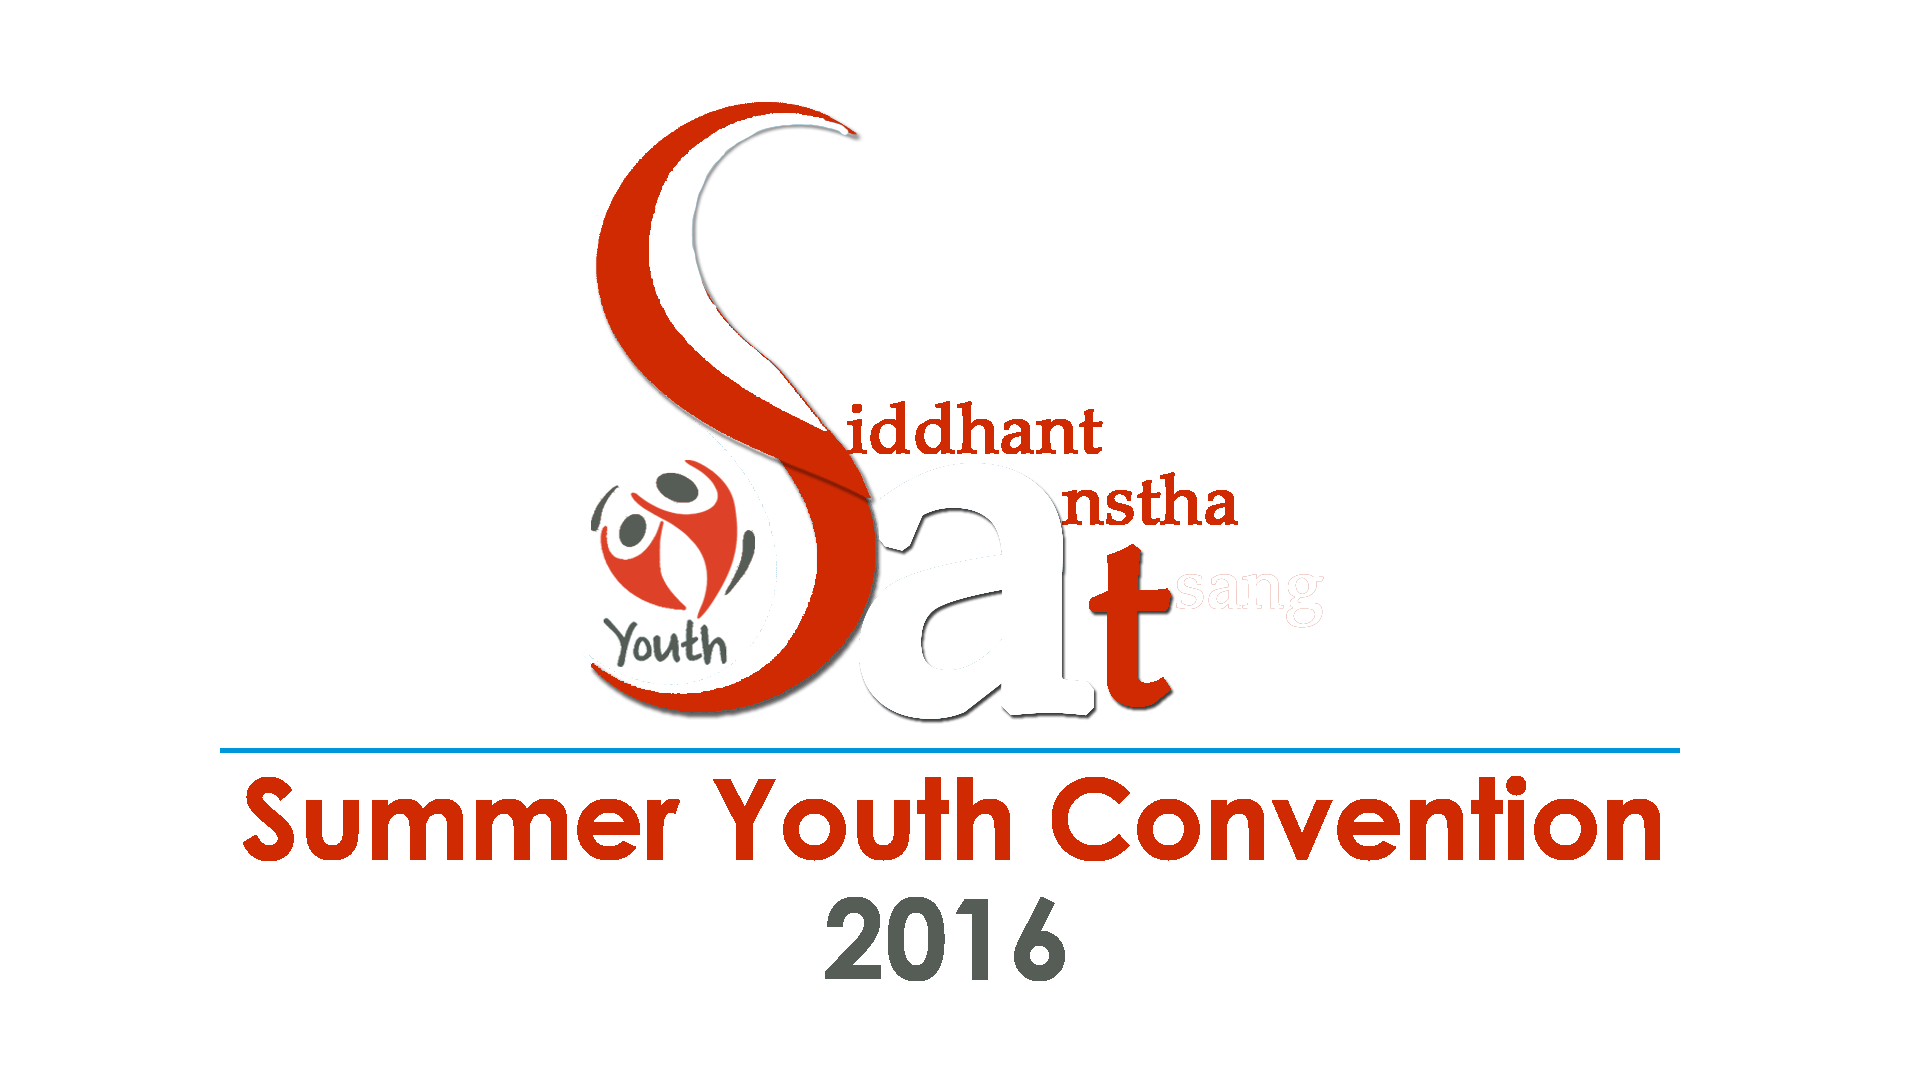 SMVS Summer Youth Convention 2016  - SMVS Swaminarayan Mandir Vasna Sanstha